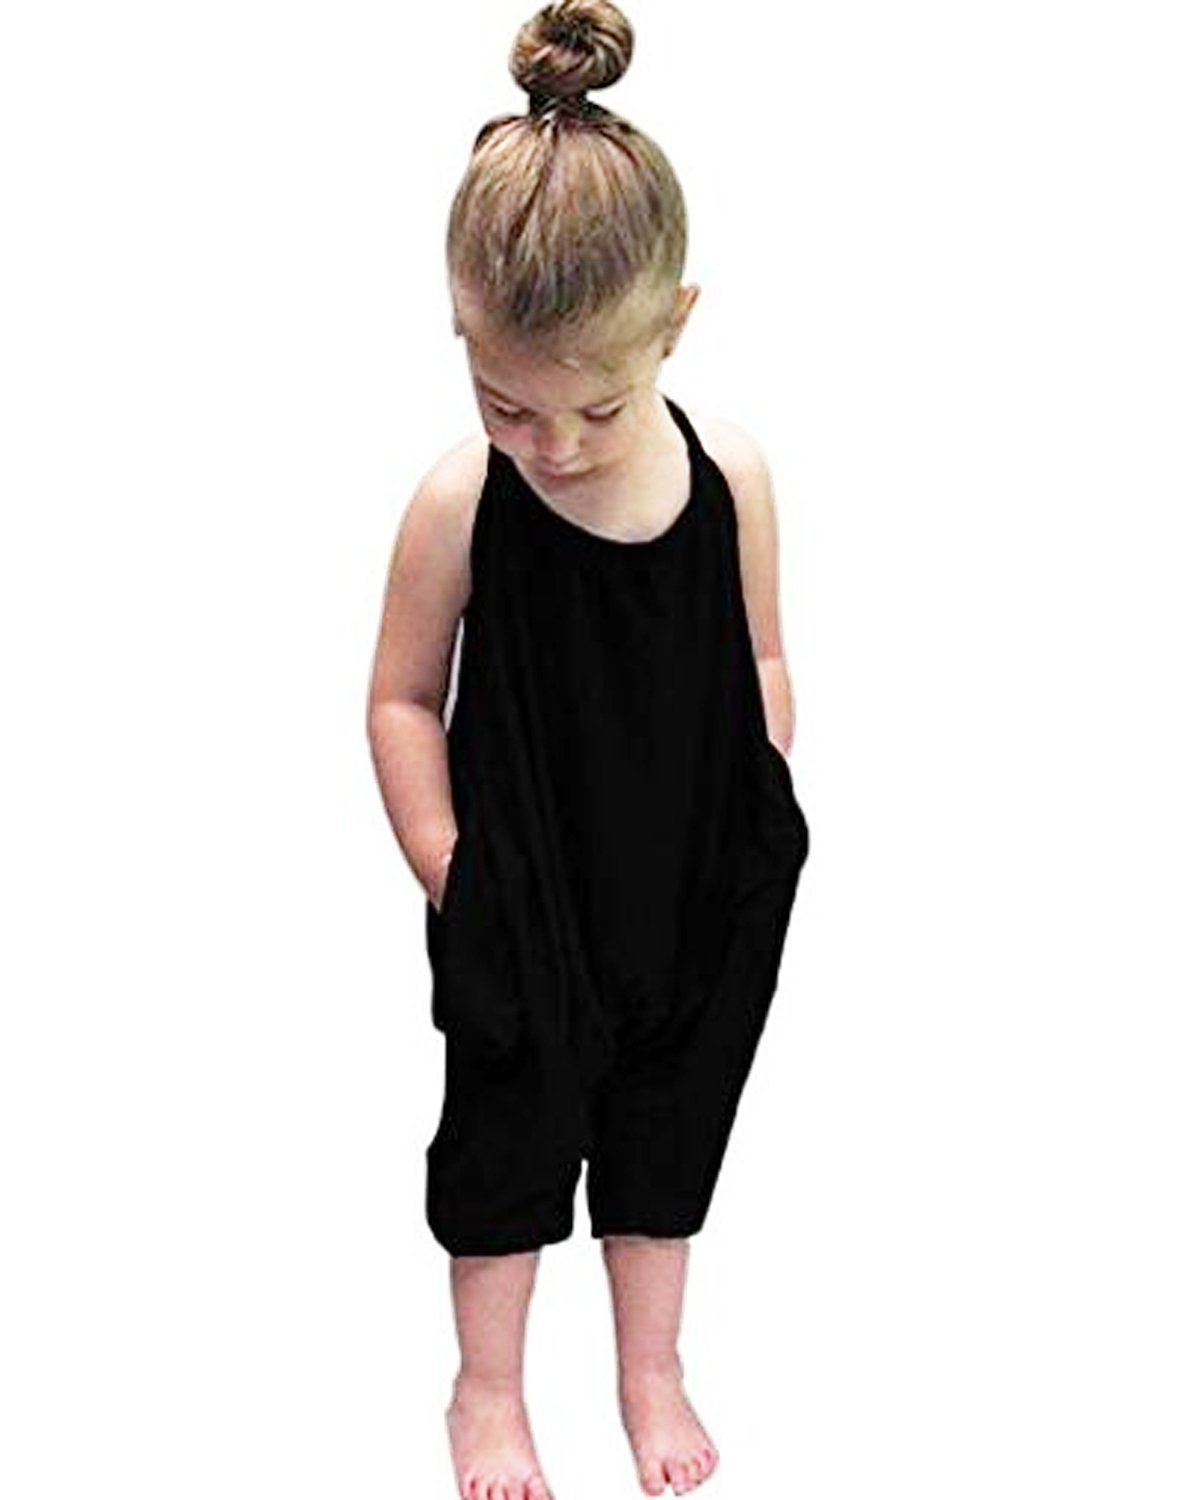 Kidsform Baby Girls Straps Rompers Cotton Halter Toddler Jumpsuit Playsuit Harem Pants One-Piece For Kids 6M-6T Black 2-3 Years